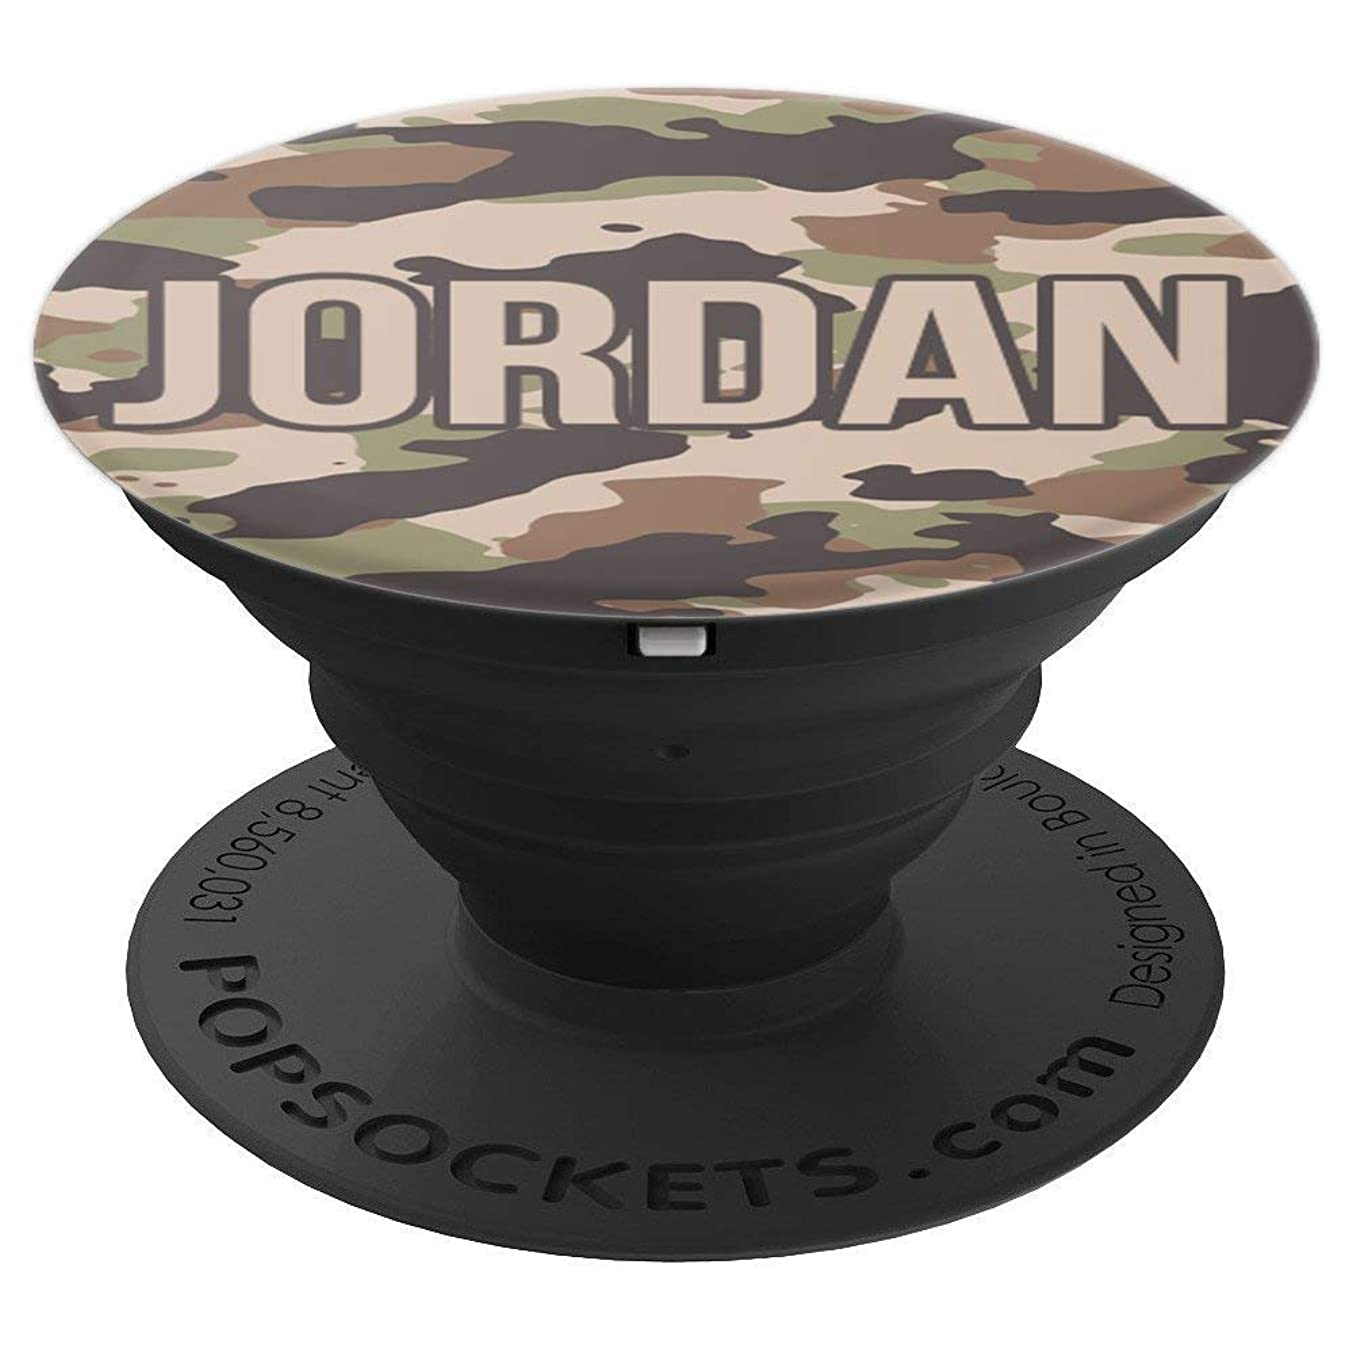 First Name Jordan Green Tan & Brown Camo Pattern PACH582 - PopSockets Grip and Stand for Phones and Tablets